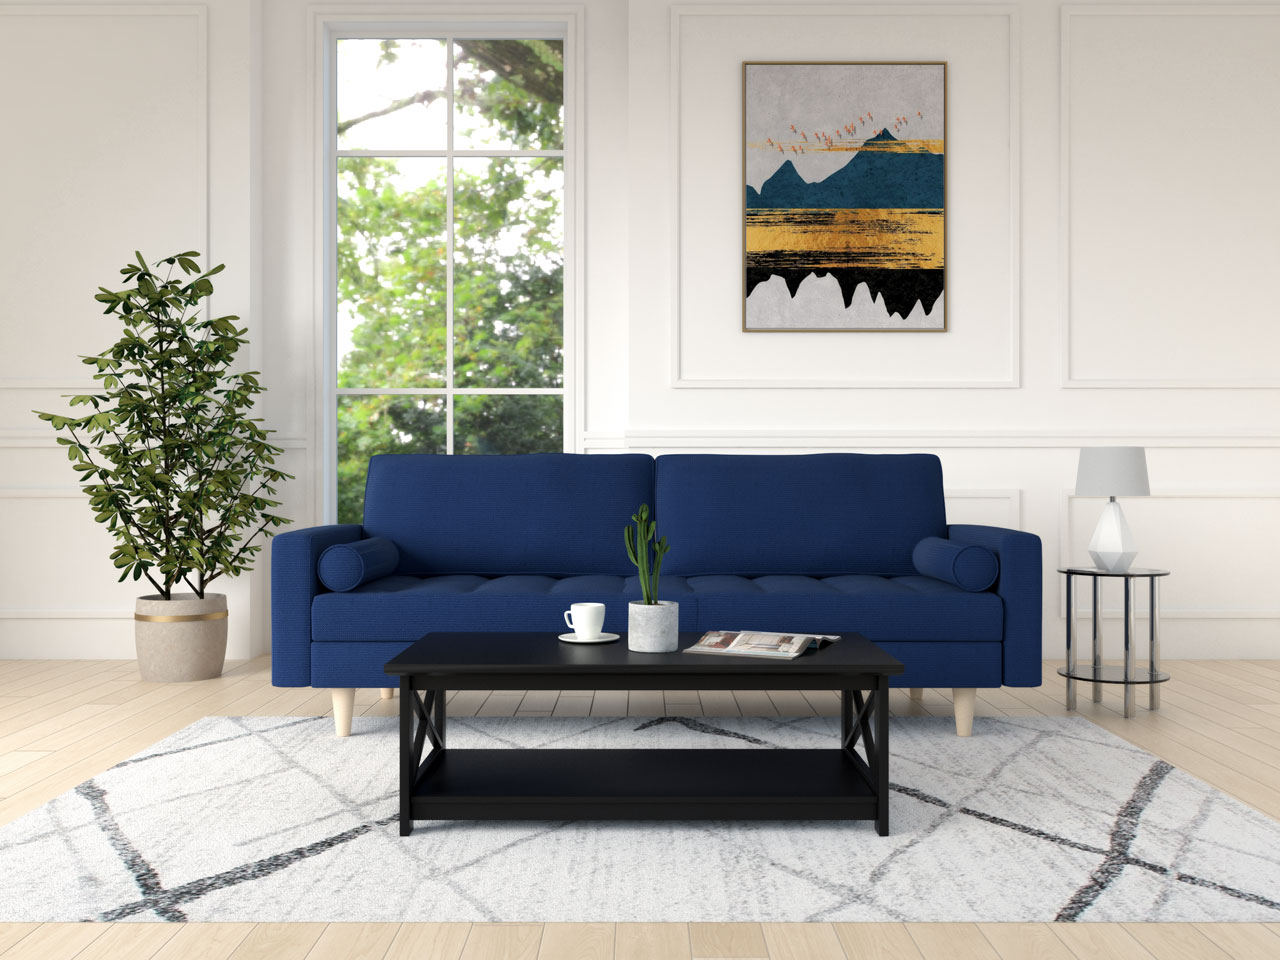 Blue couch with a black table